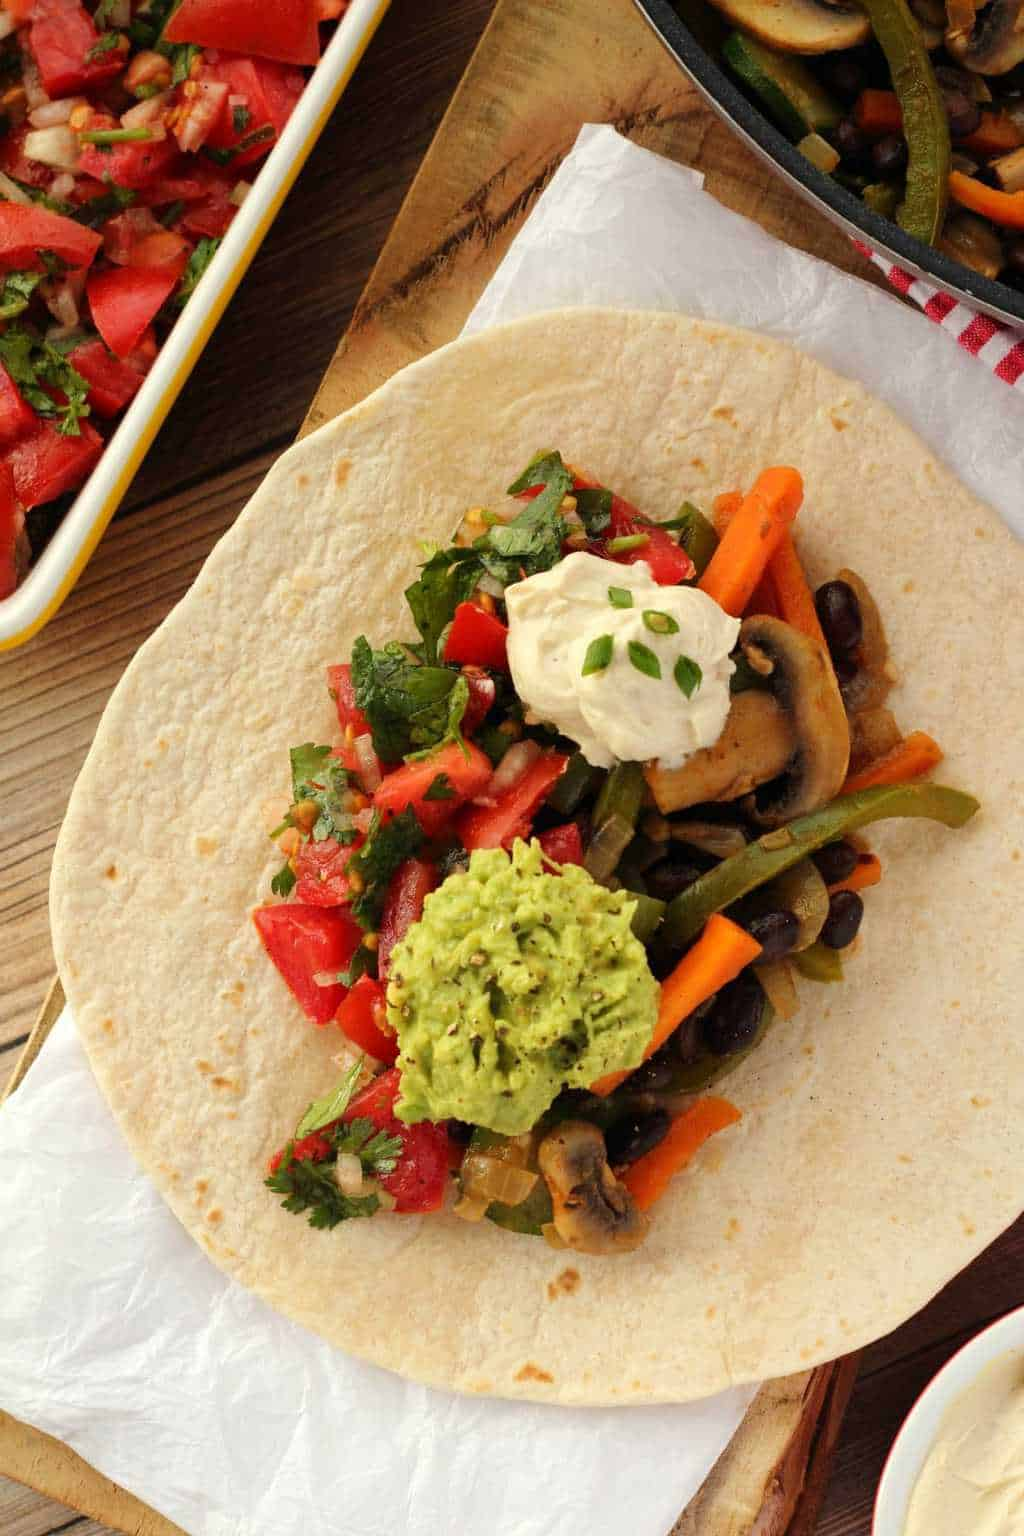 Assembling veggie fajitas on a wooden board.